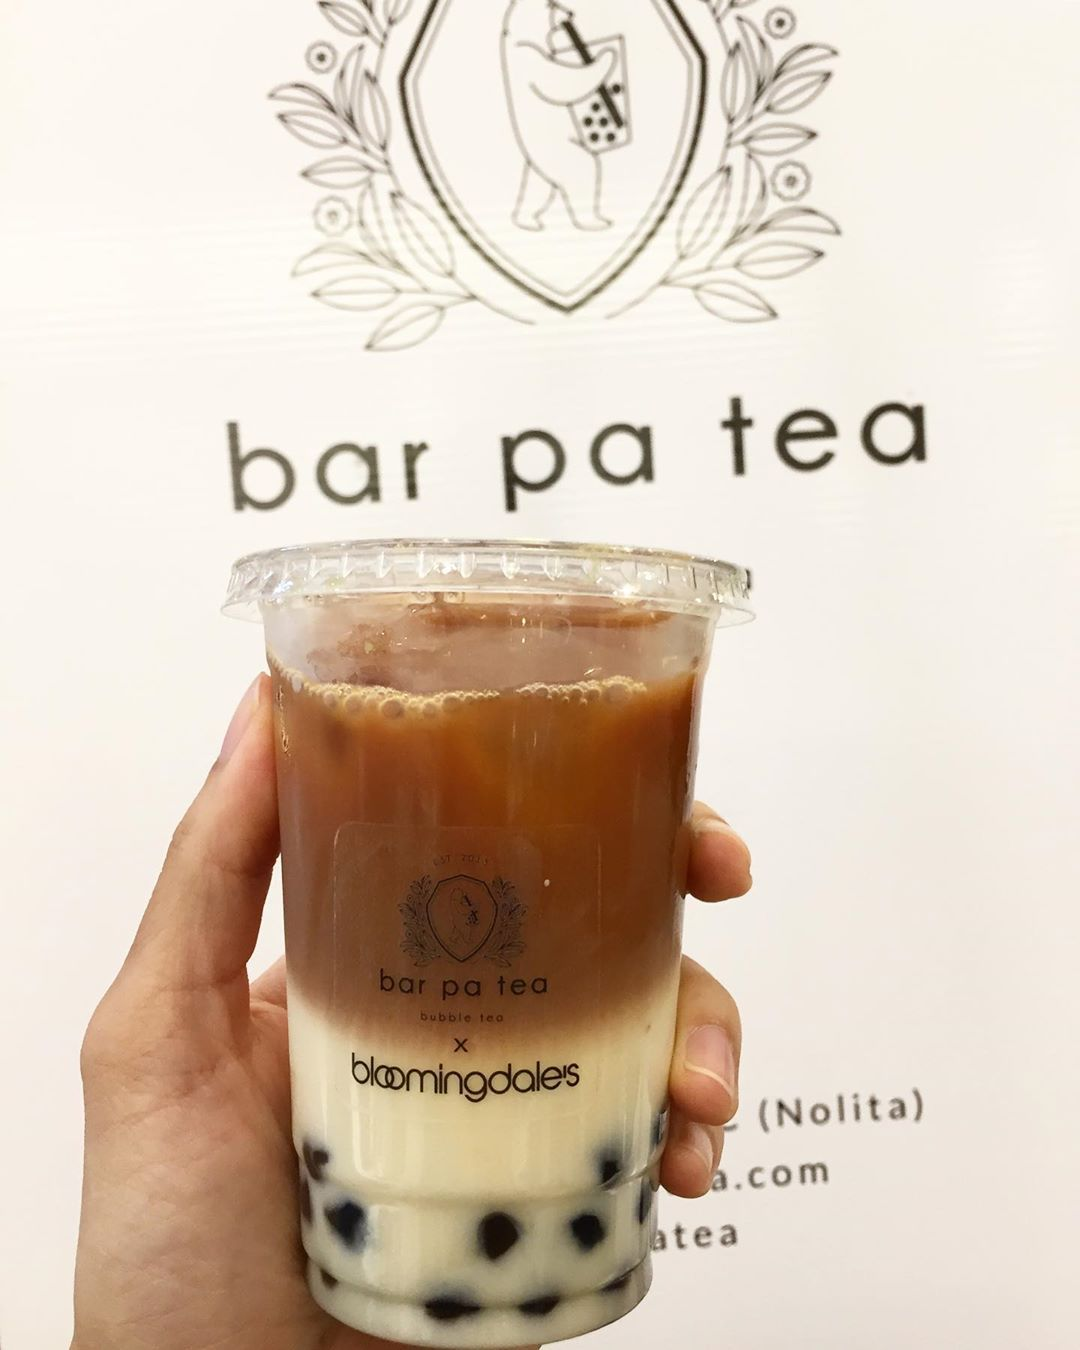 PA TEA in my mouth (5/5) black tea latte with oat milk. I agreed to 50% sugar, but after mixing it was sweet. Boba was chewy. Me likey  ____________________________________________